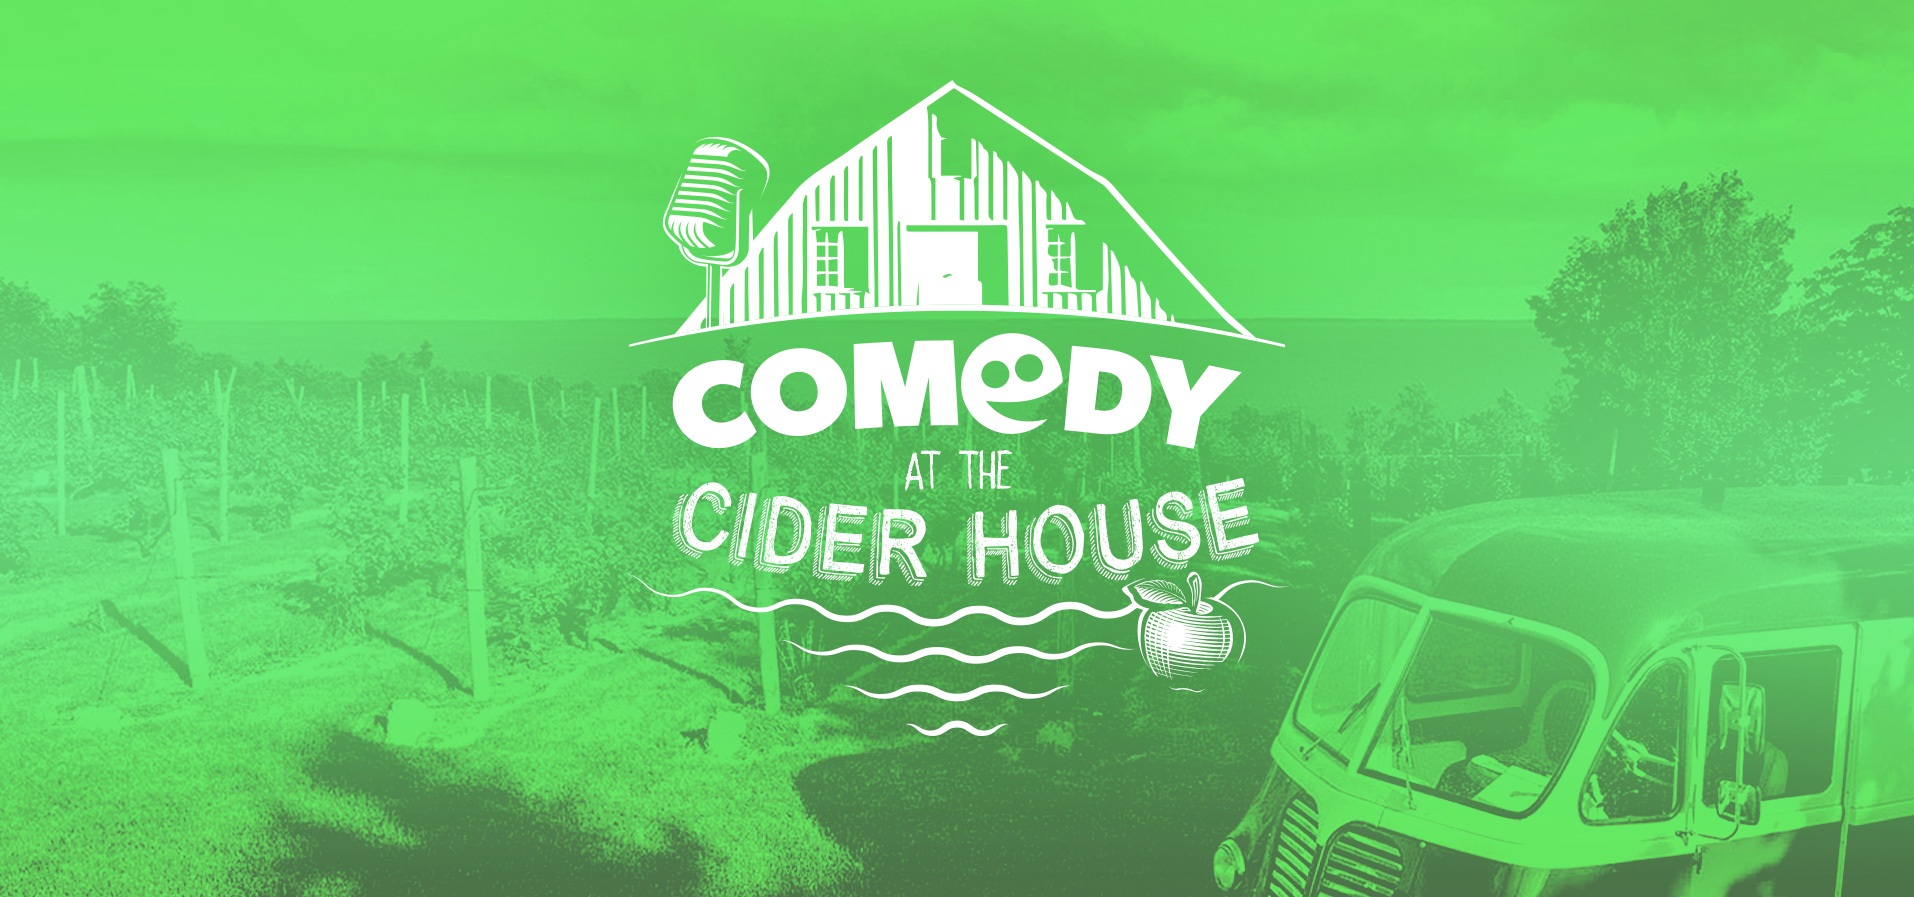 Comedy at the Cider House